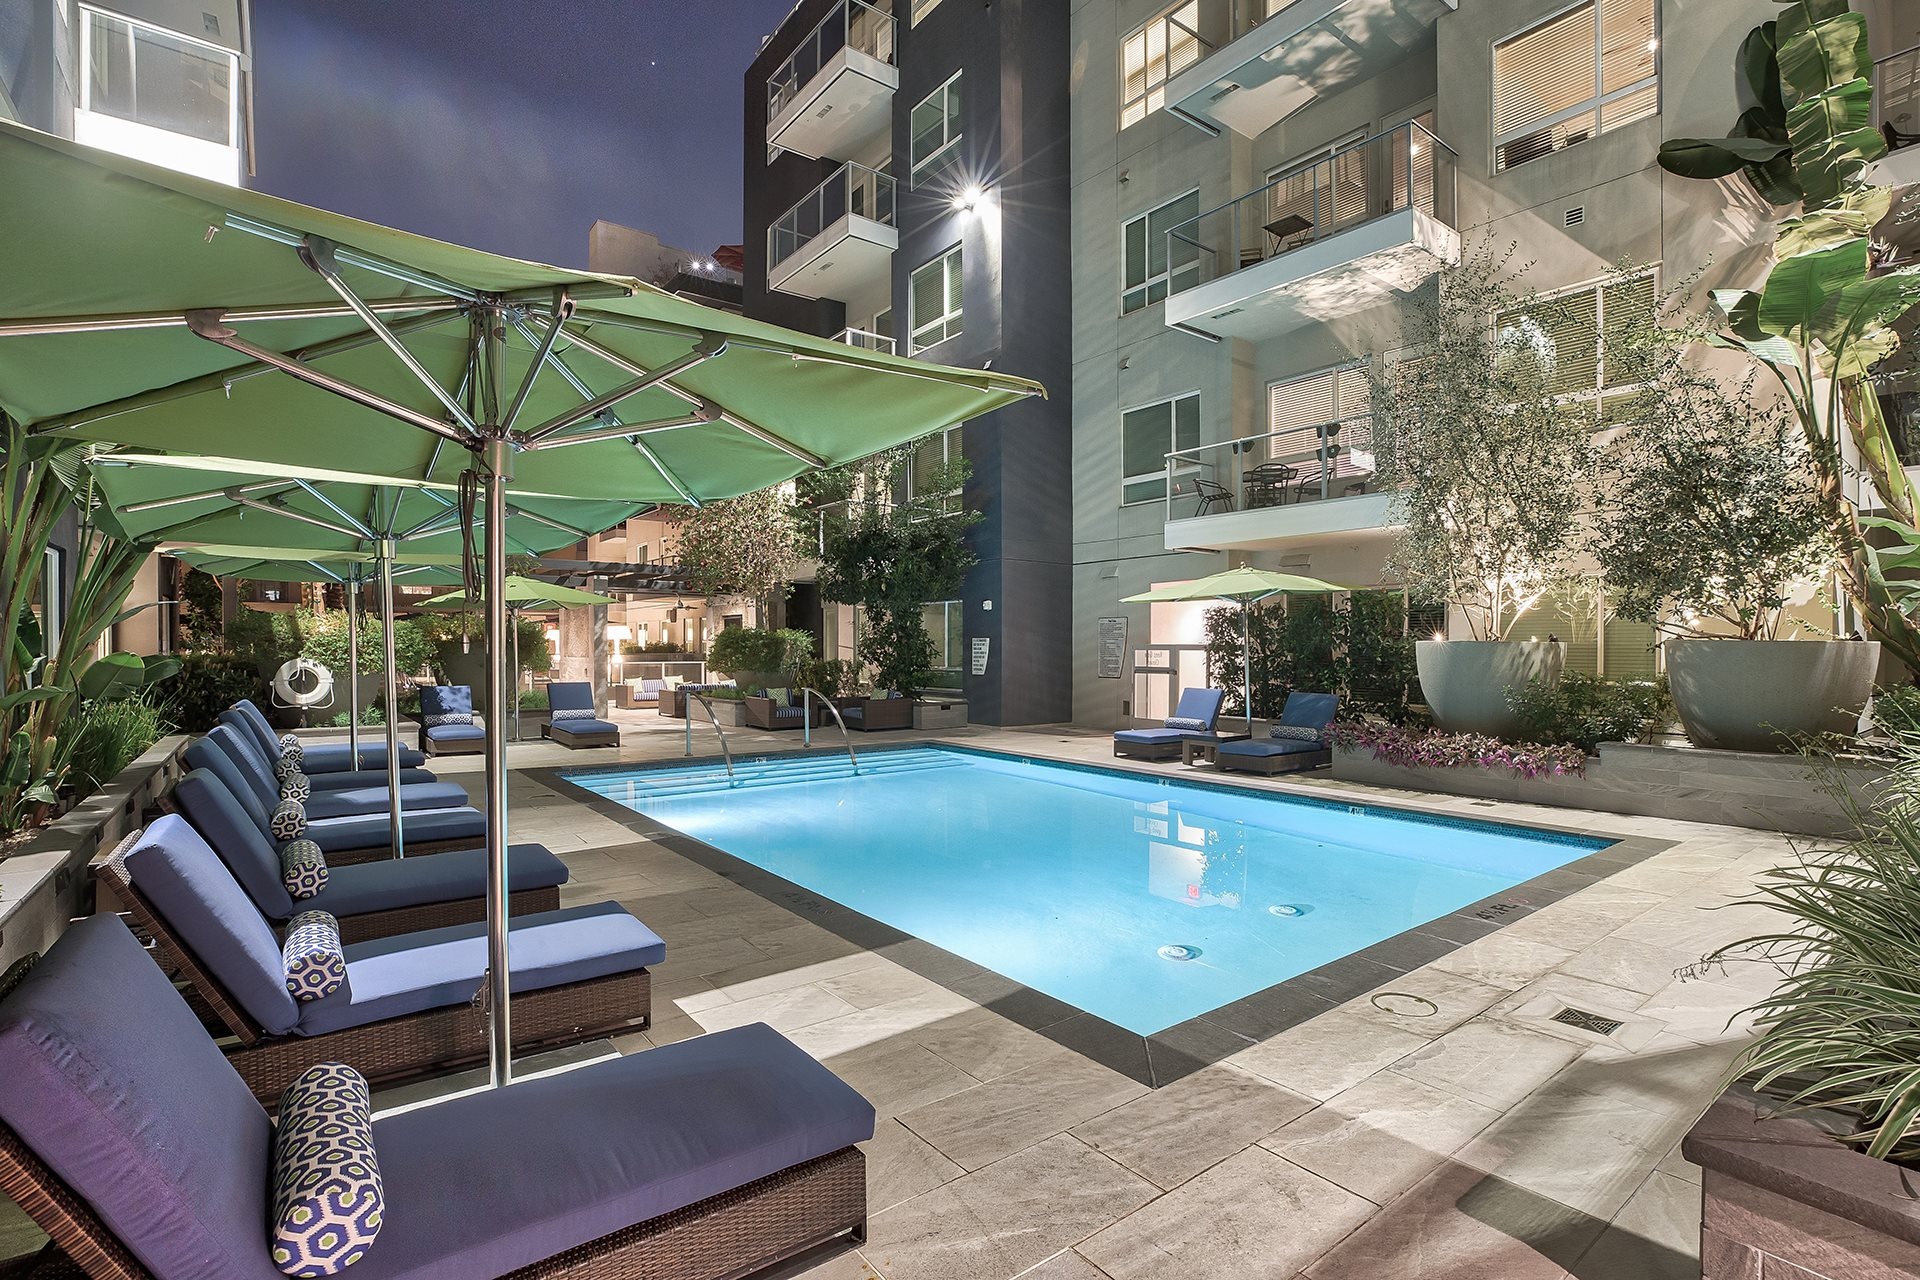 Spend the evening relaxing by the pool at Olympic by Windsor, 936 S. Olive St, CA